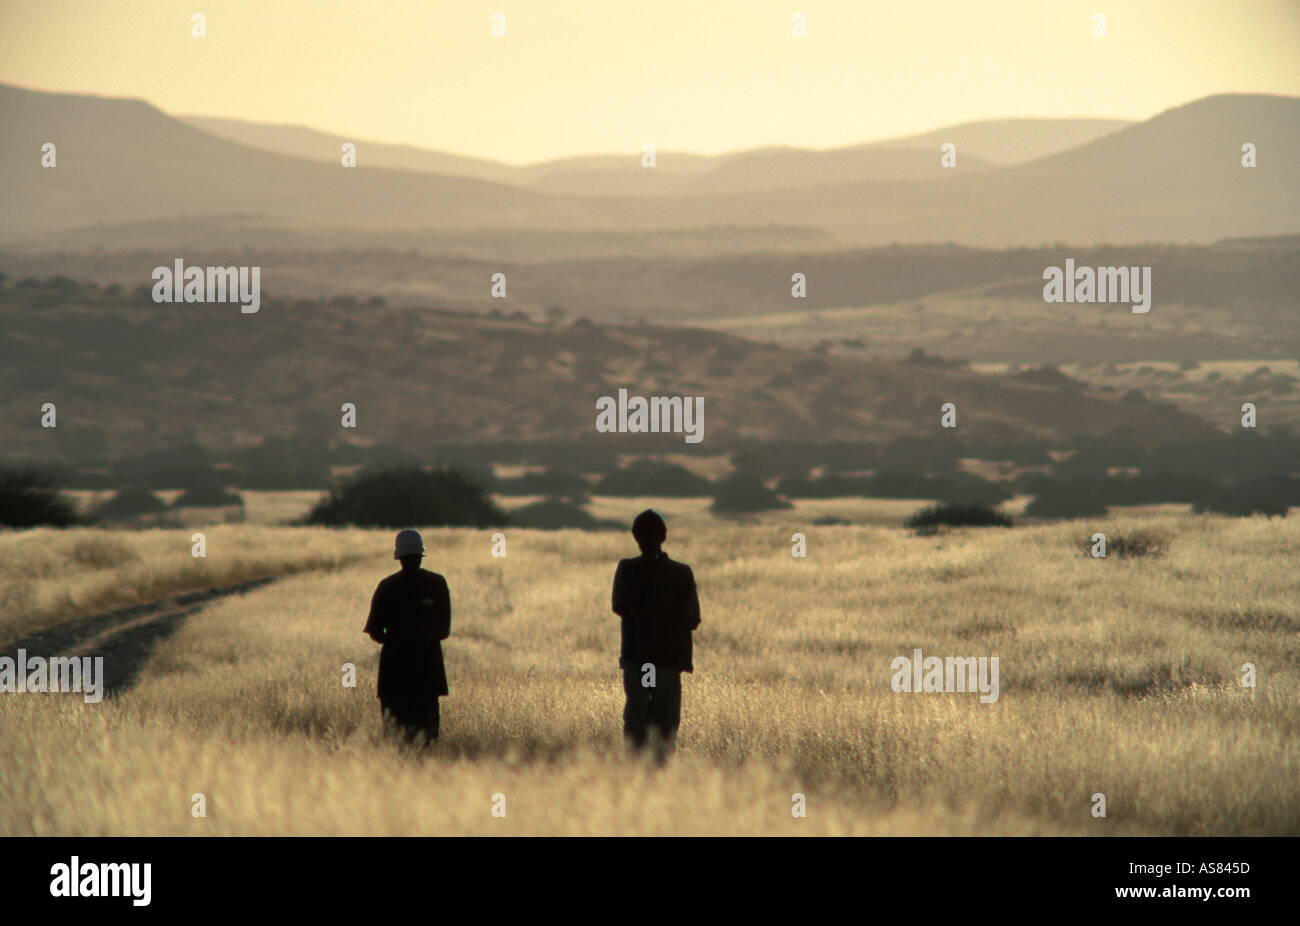 silhouettes at sunset Palamwag South of Opuwo on the Sesfontein road Namibia - Stock Image